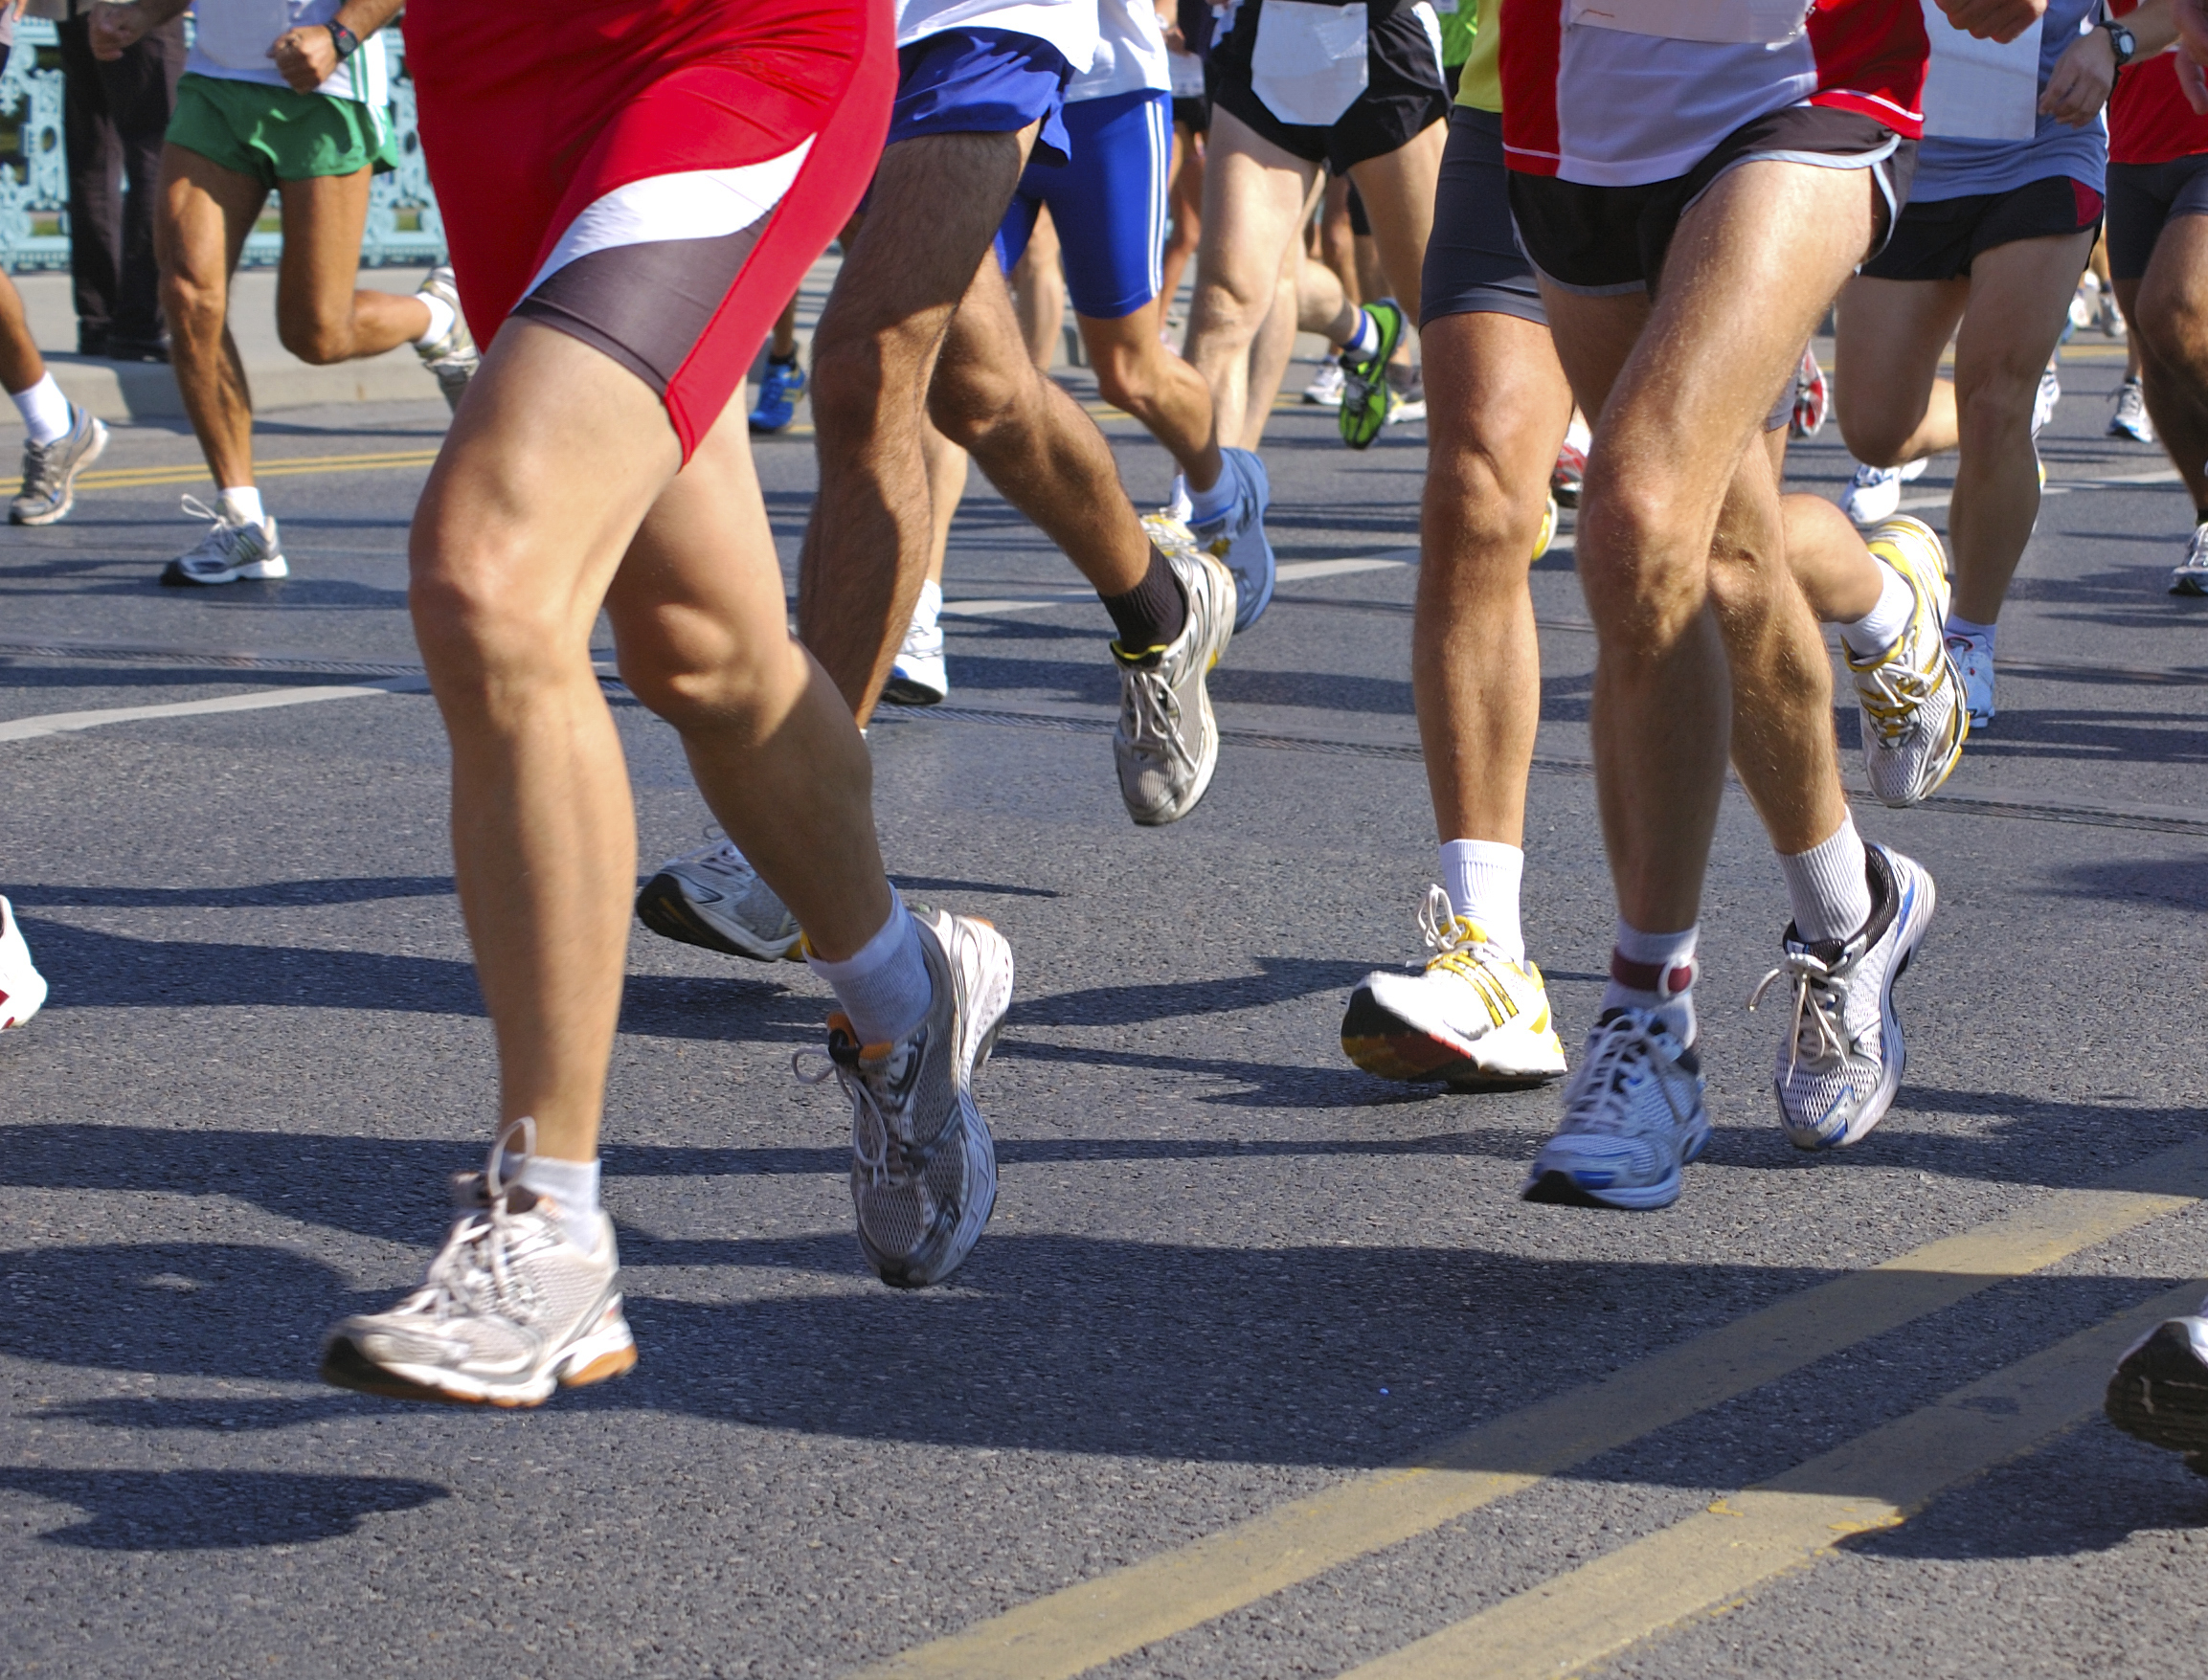 Are you taking part in a sports event for charity?